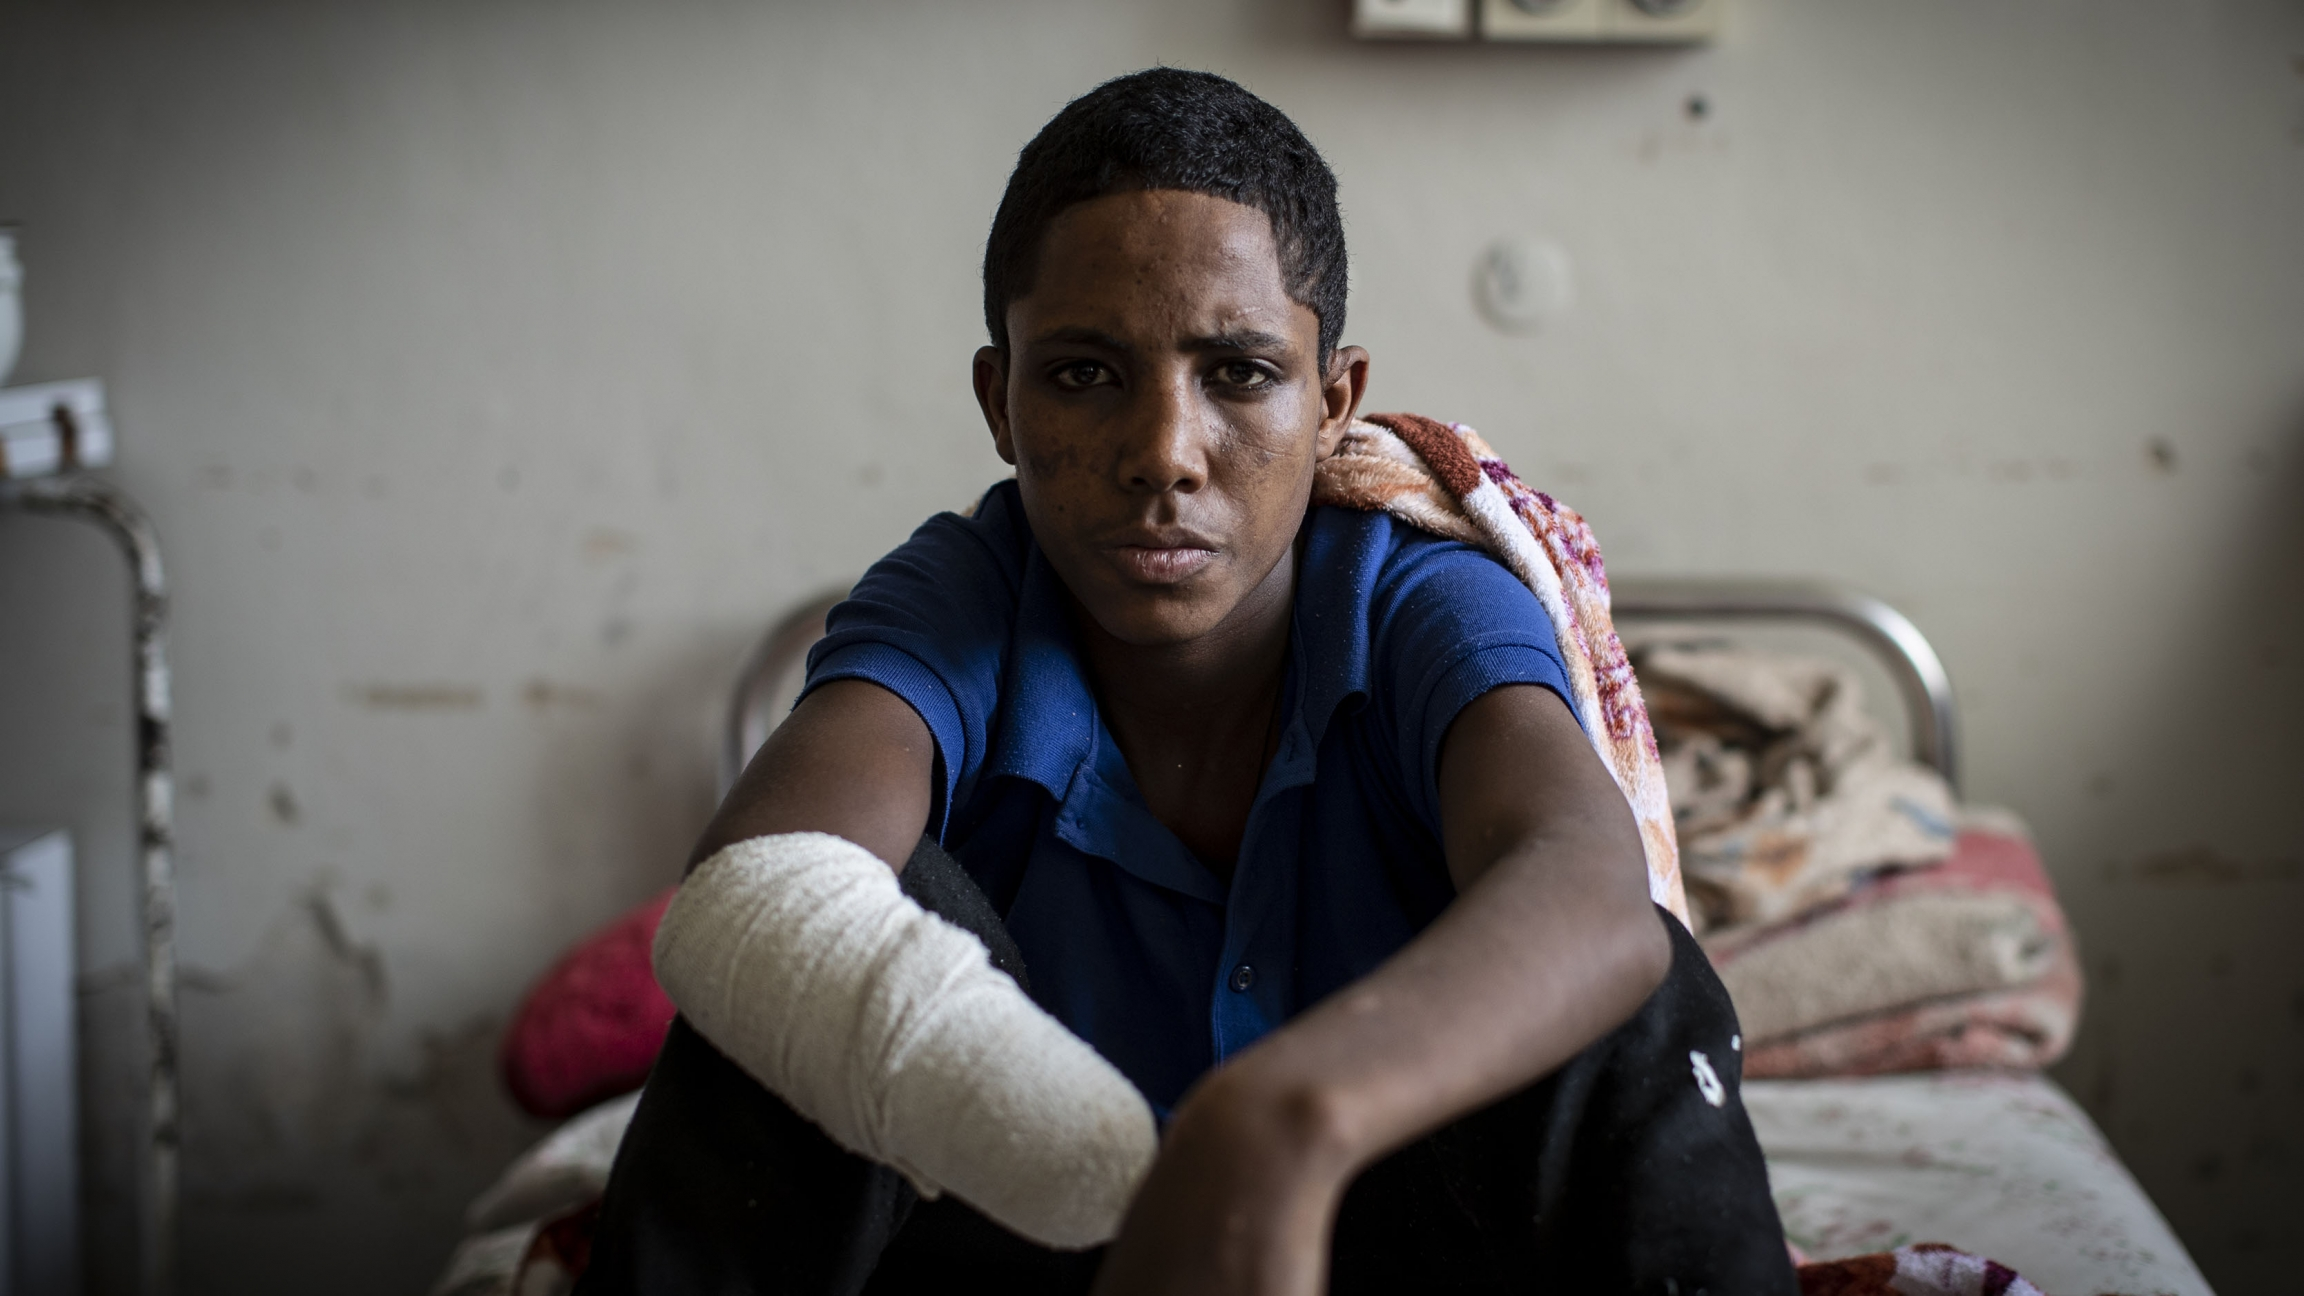 A boy wearing blue sits on hospital bed with wrapped bandage from missing limbs.